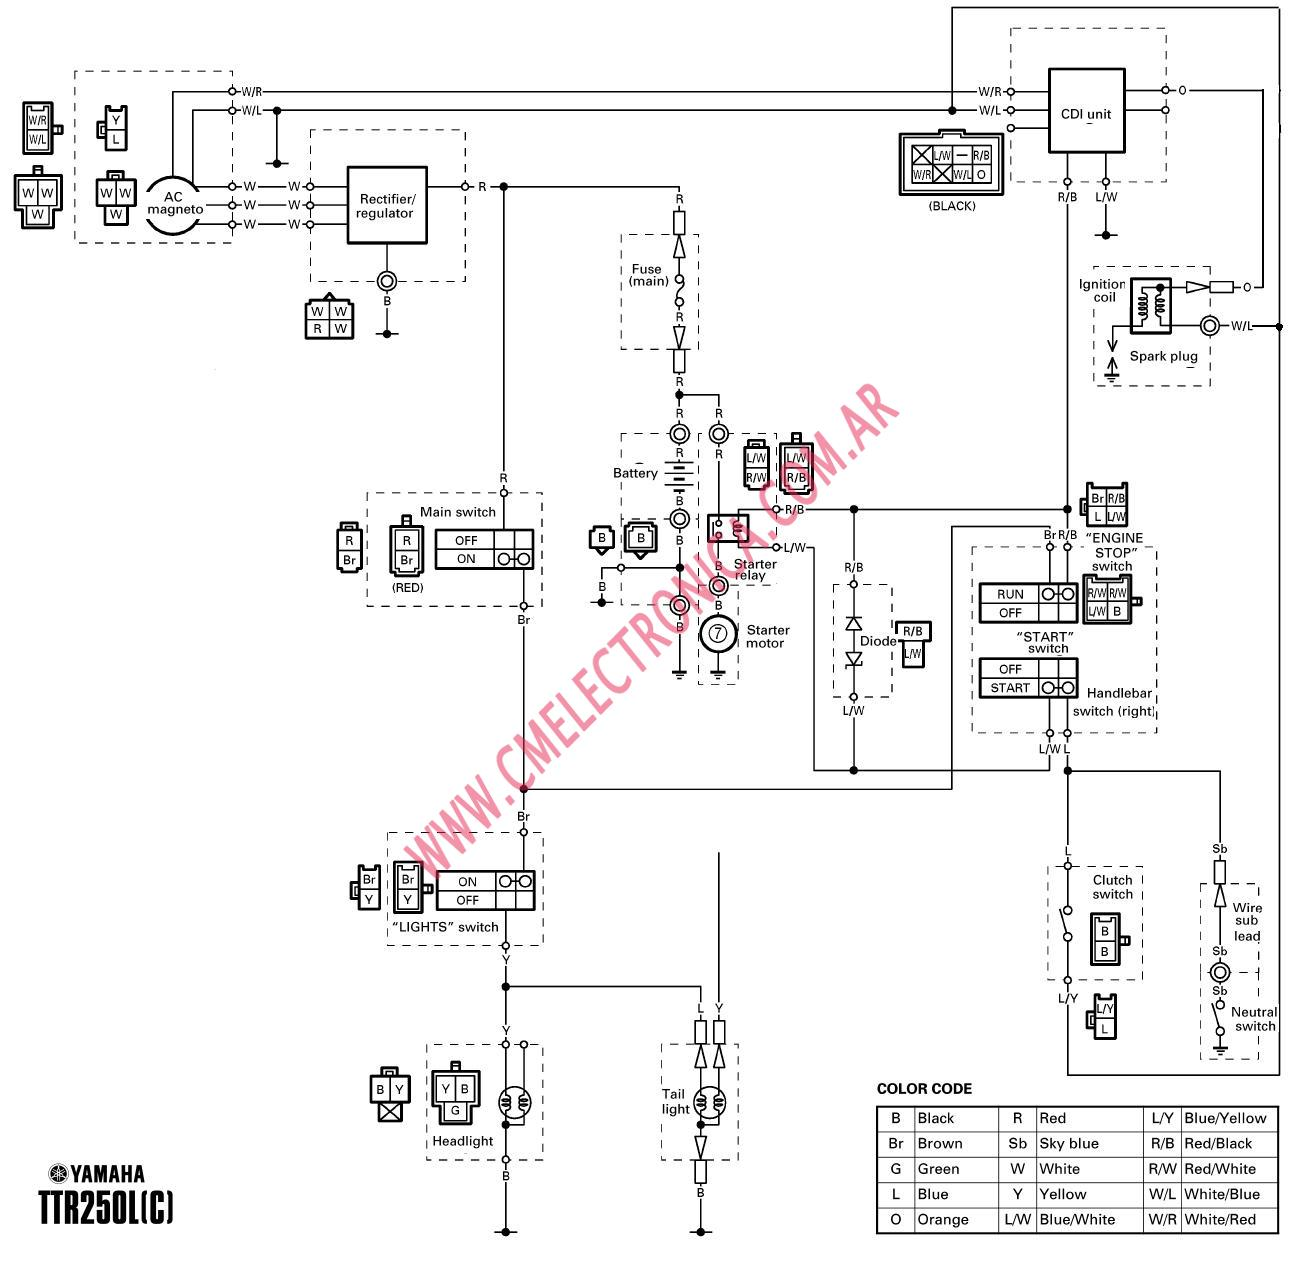 yamaha ttr250 diagrama yamaha ttr250 ttr 250 wiring diagram at crackthecode.co